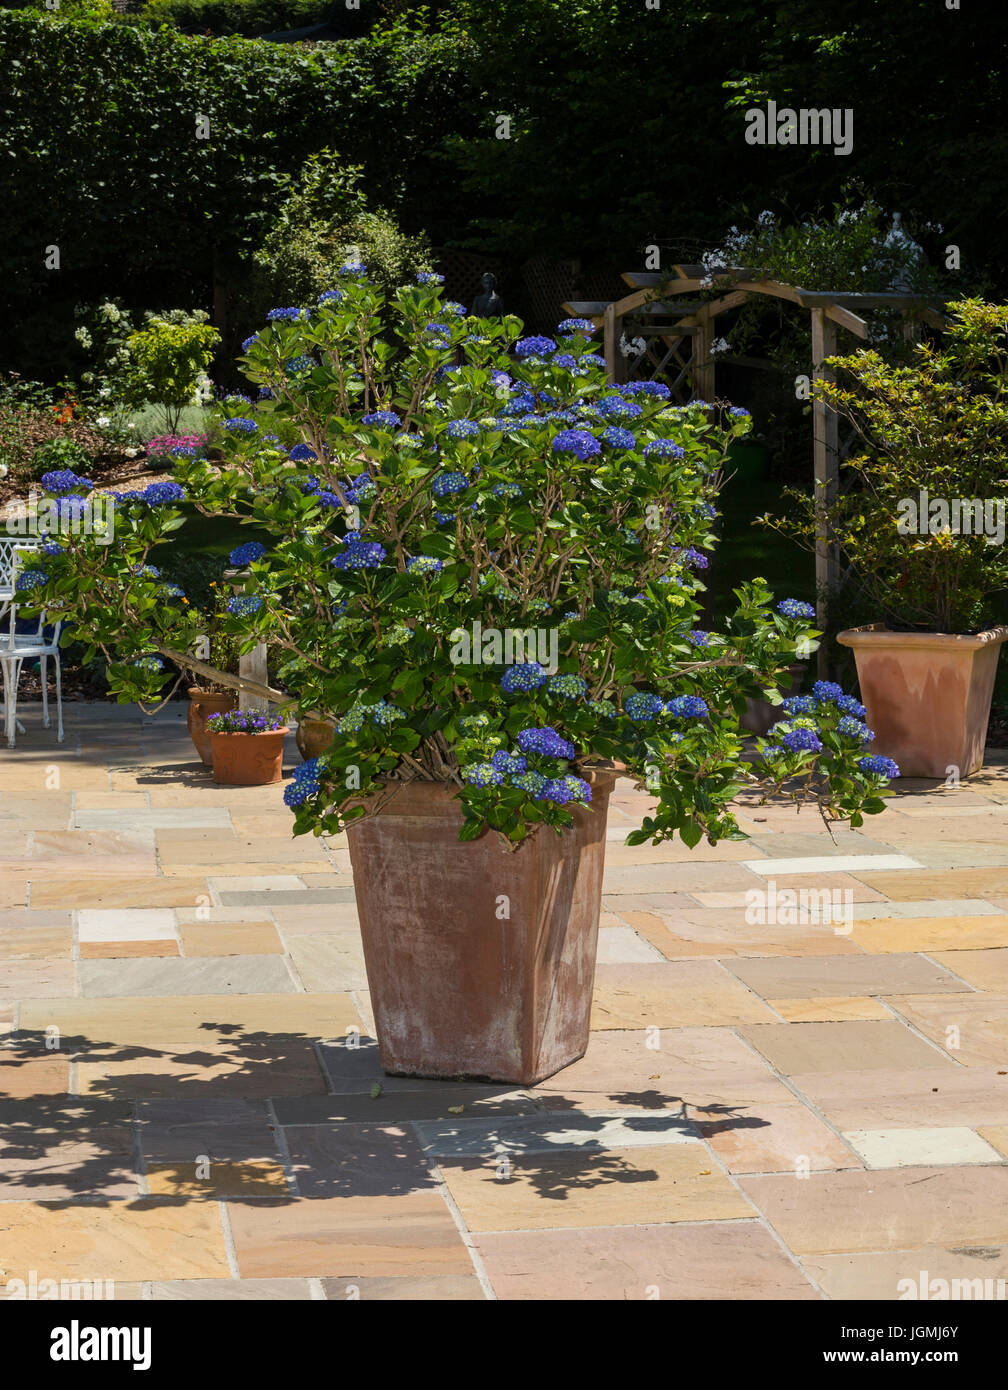 Large mop head bright blue hydrangea grown in a large pot container on a patio. - Stock Image